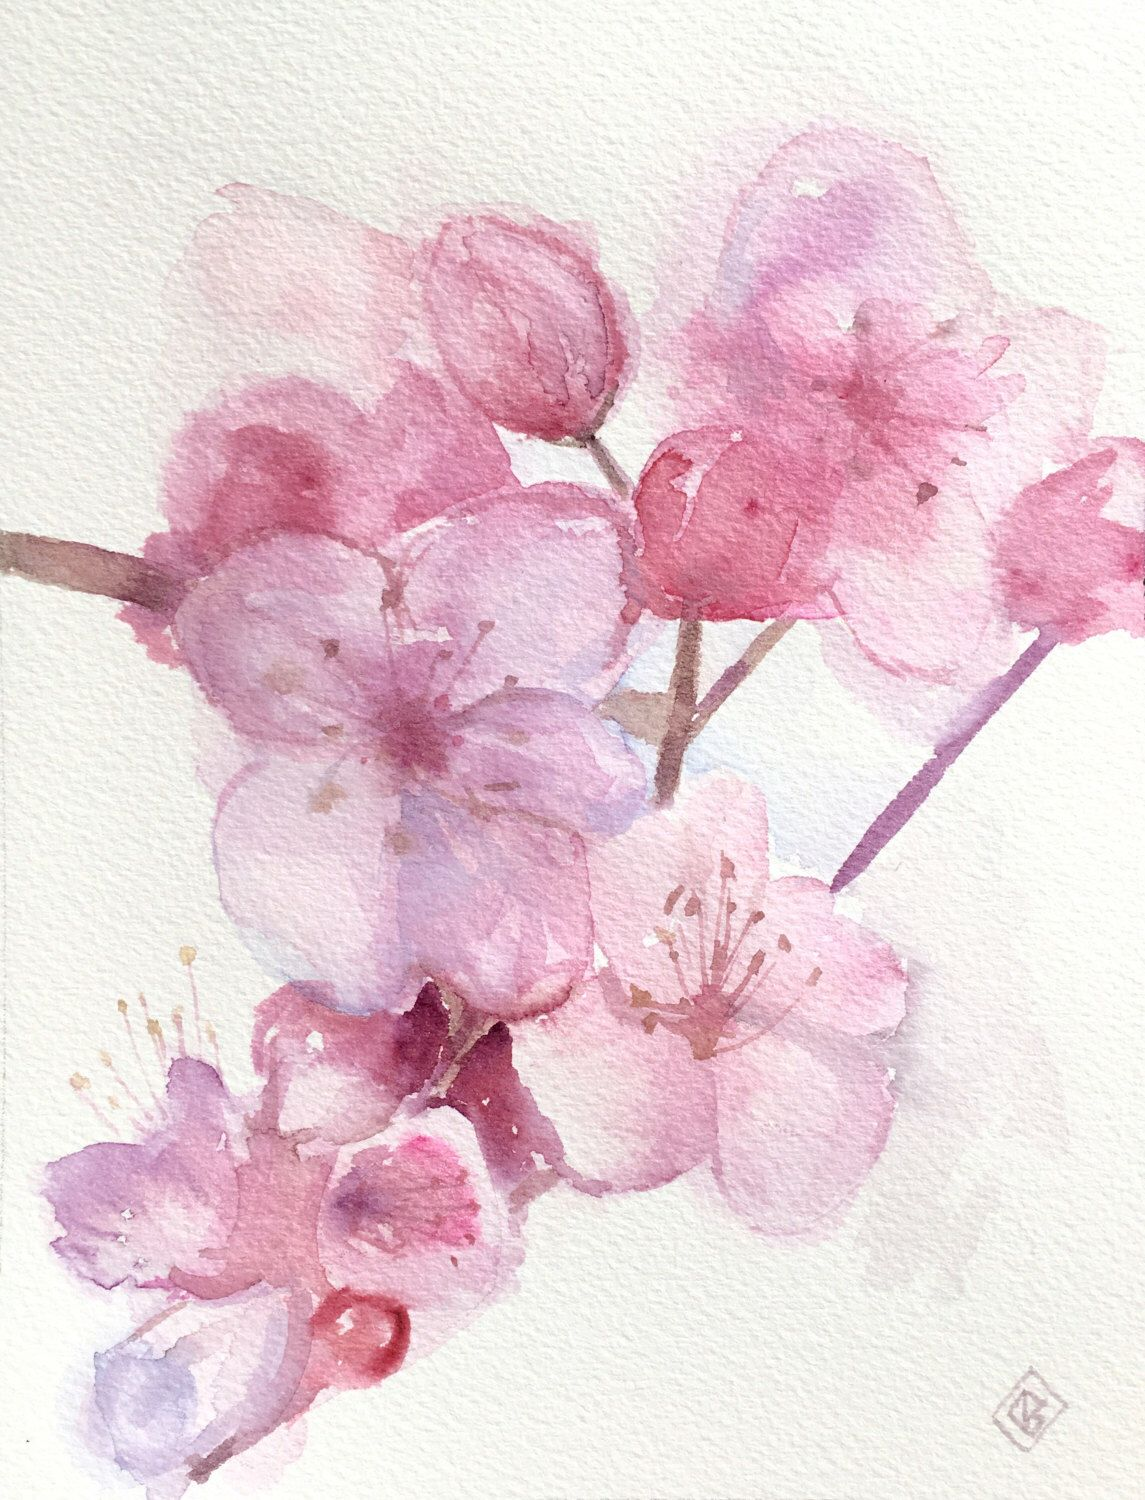 plum branch asian personals Gail paints a plum blossom branch gail paints a plum blossom branch  chinese plum blossom paintings  asian brushpainter 2,999 views 1:06 peony, rose, .